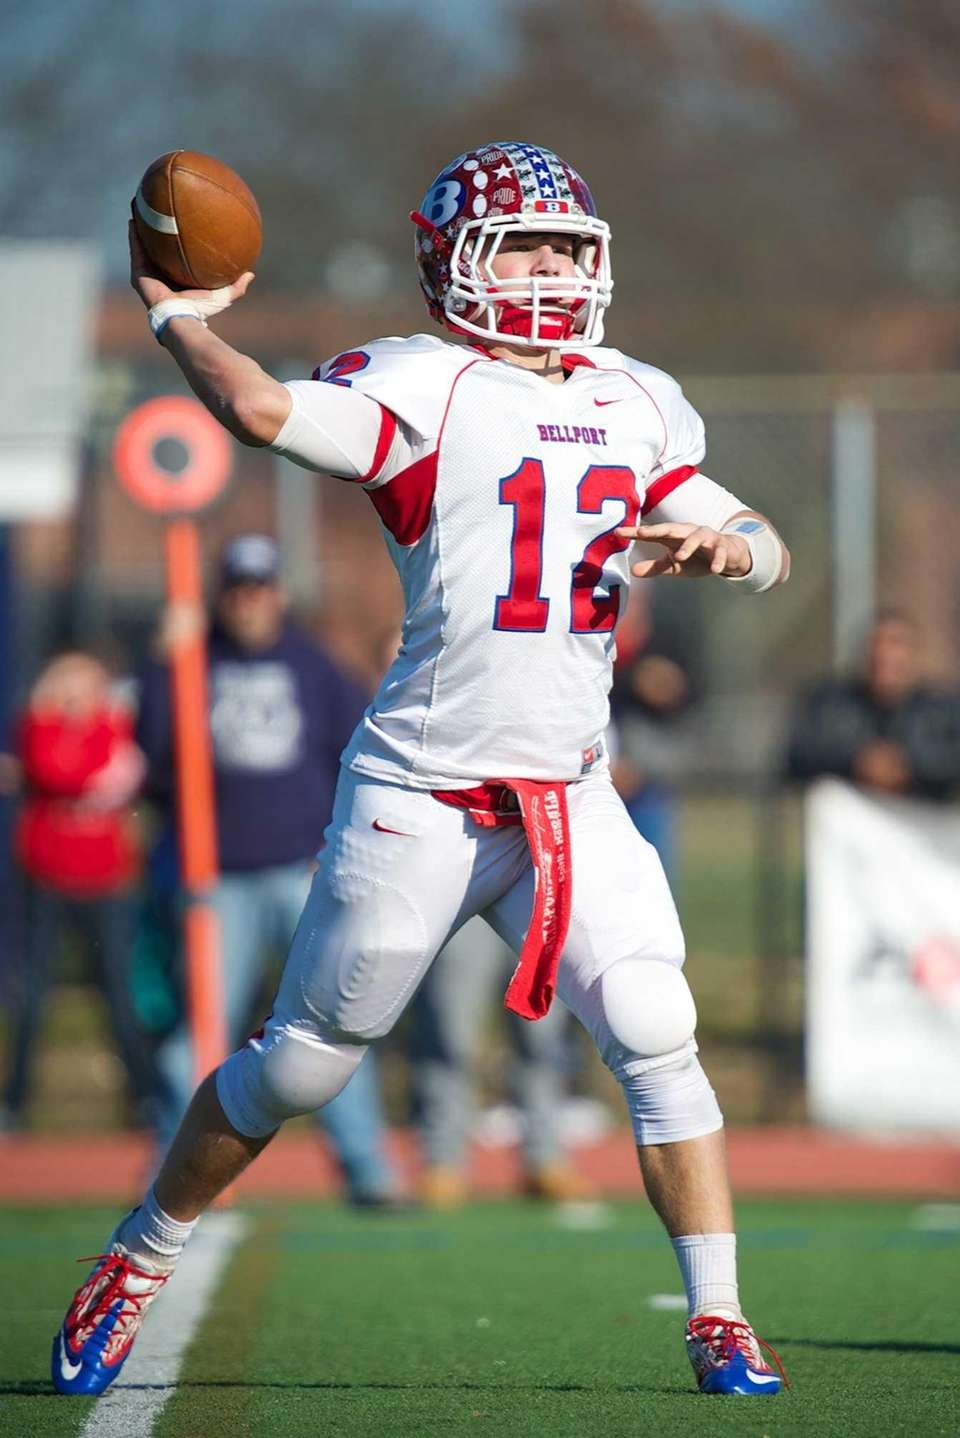 Bellport quarterback Nick Fountis attempts a pass against